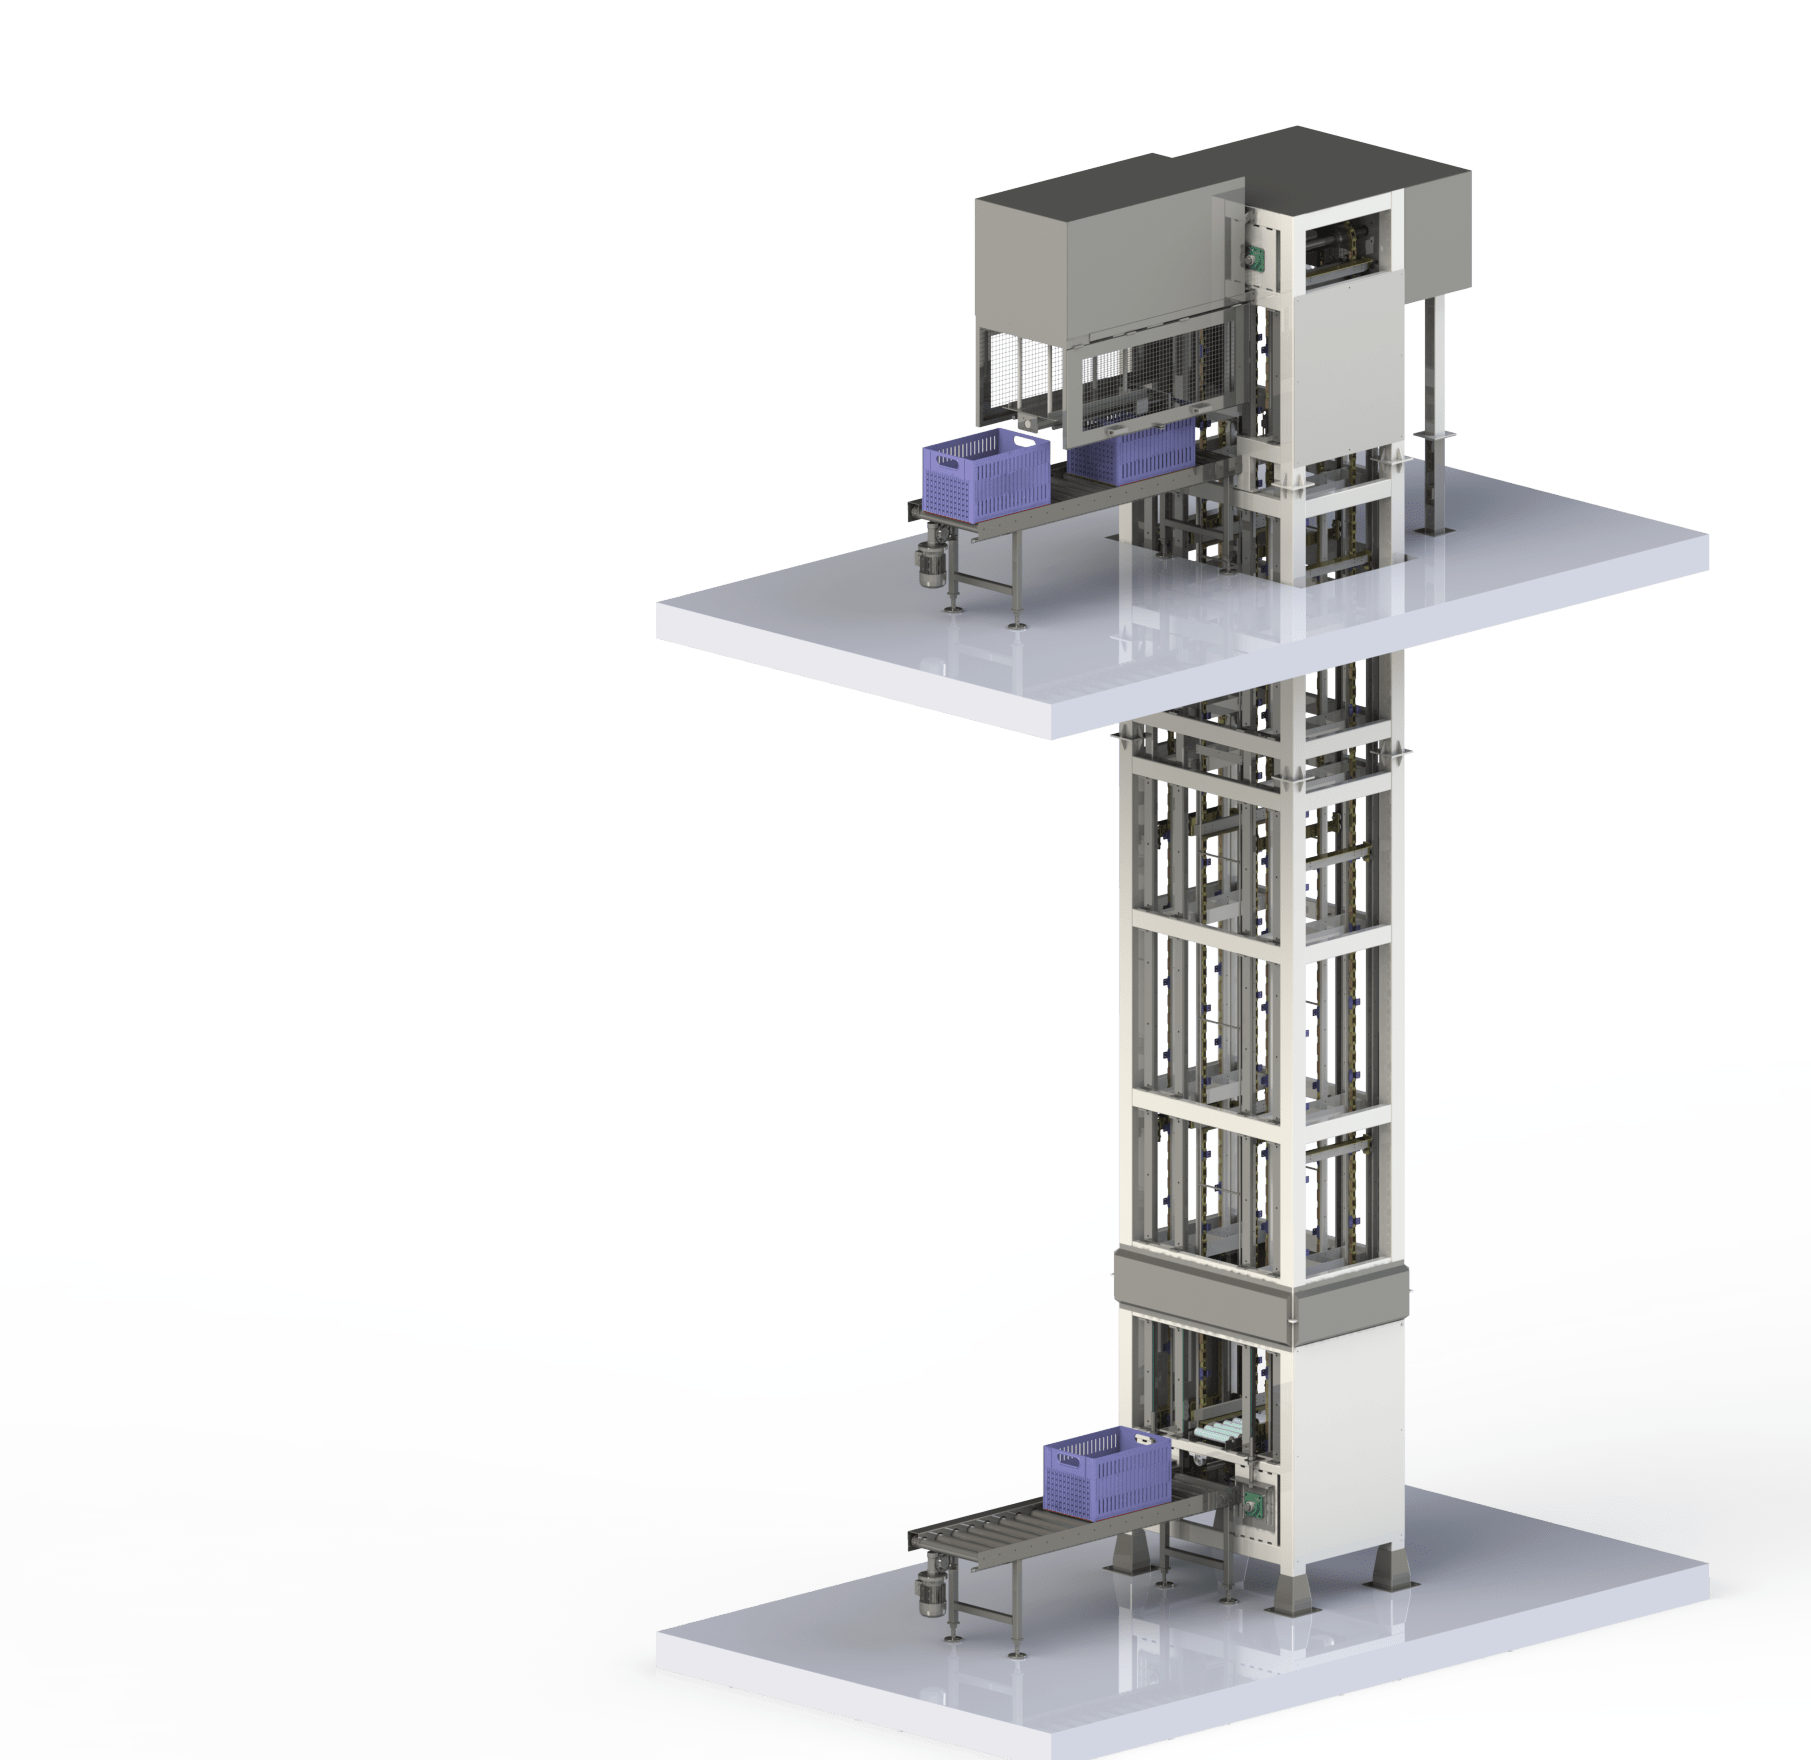 Kanchan Metals Launches Vertical Tray Lifting System for Food Processing Industry